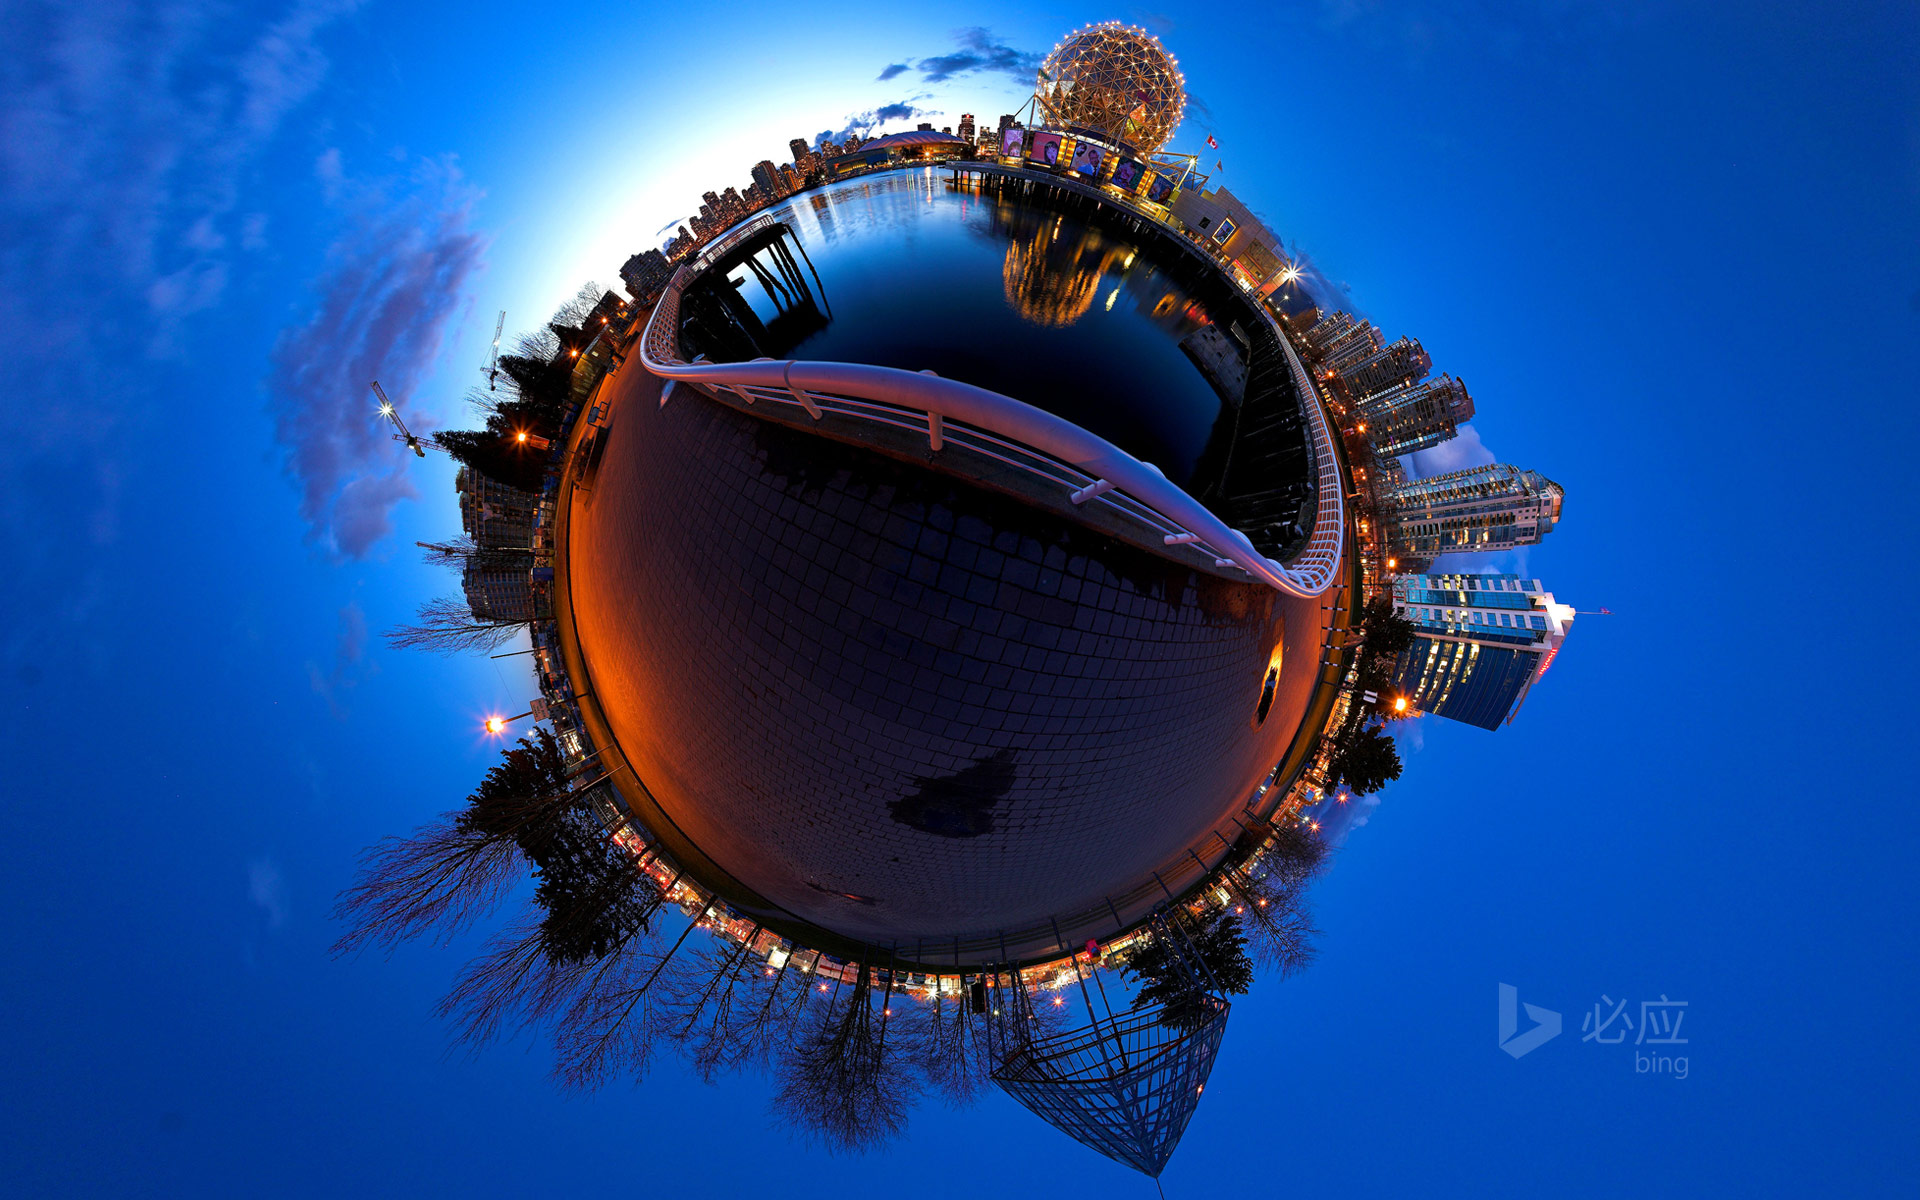 Stereo projection of Vancouver, British Columbia, Canada, Ford Creek and Science World